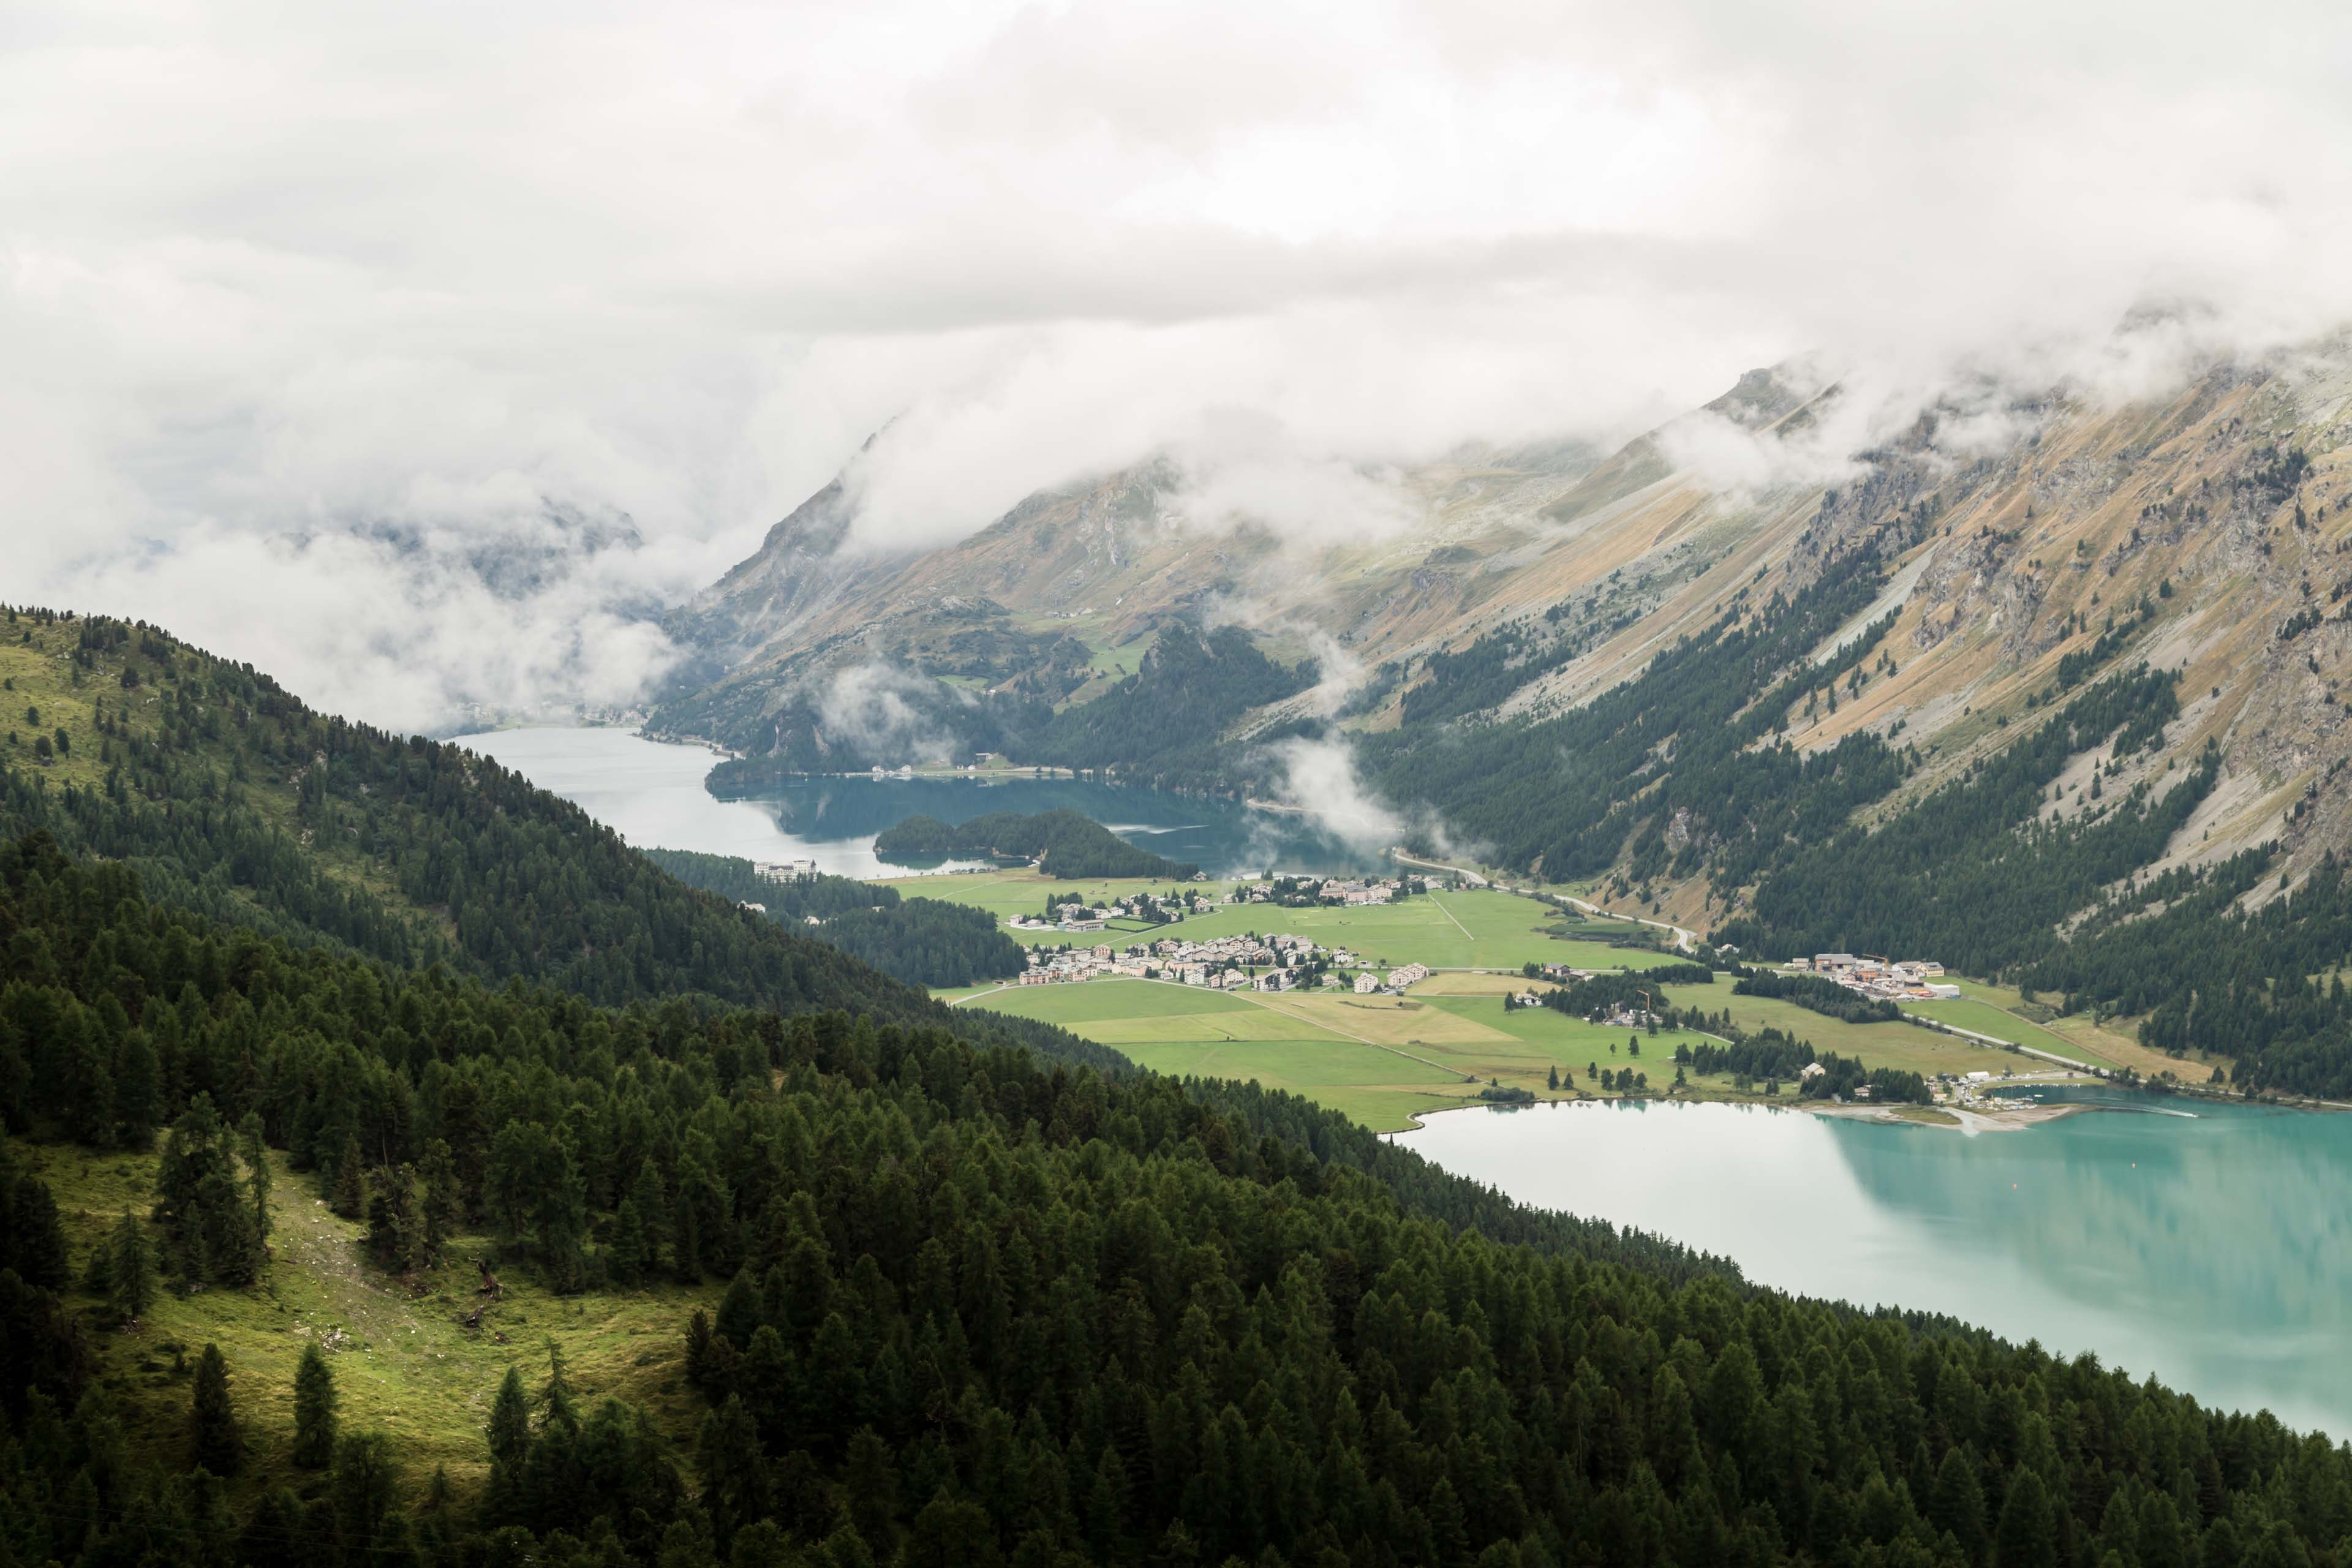 A village between two lakes in a mountain valley